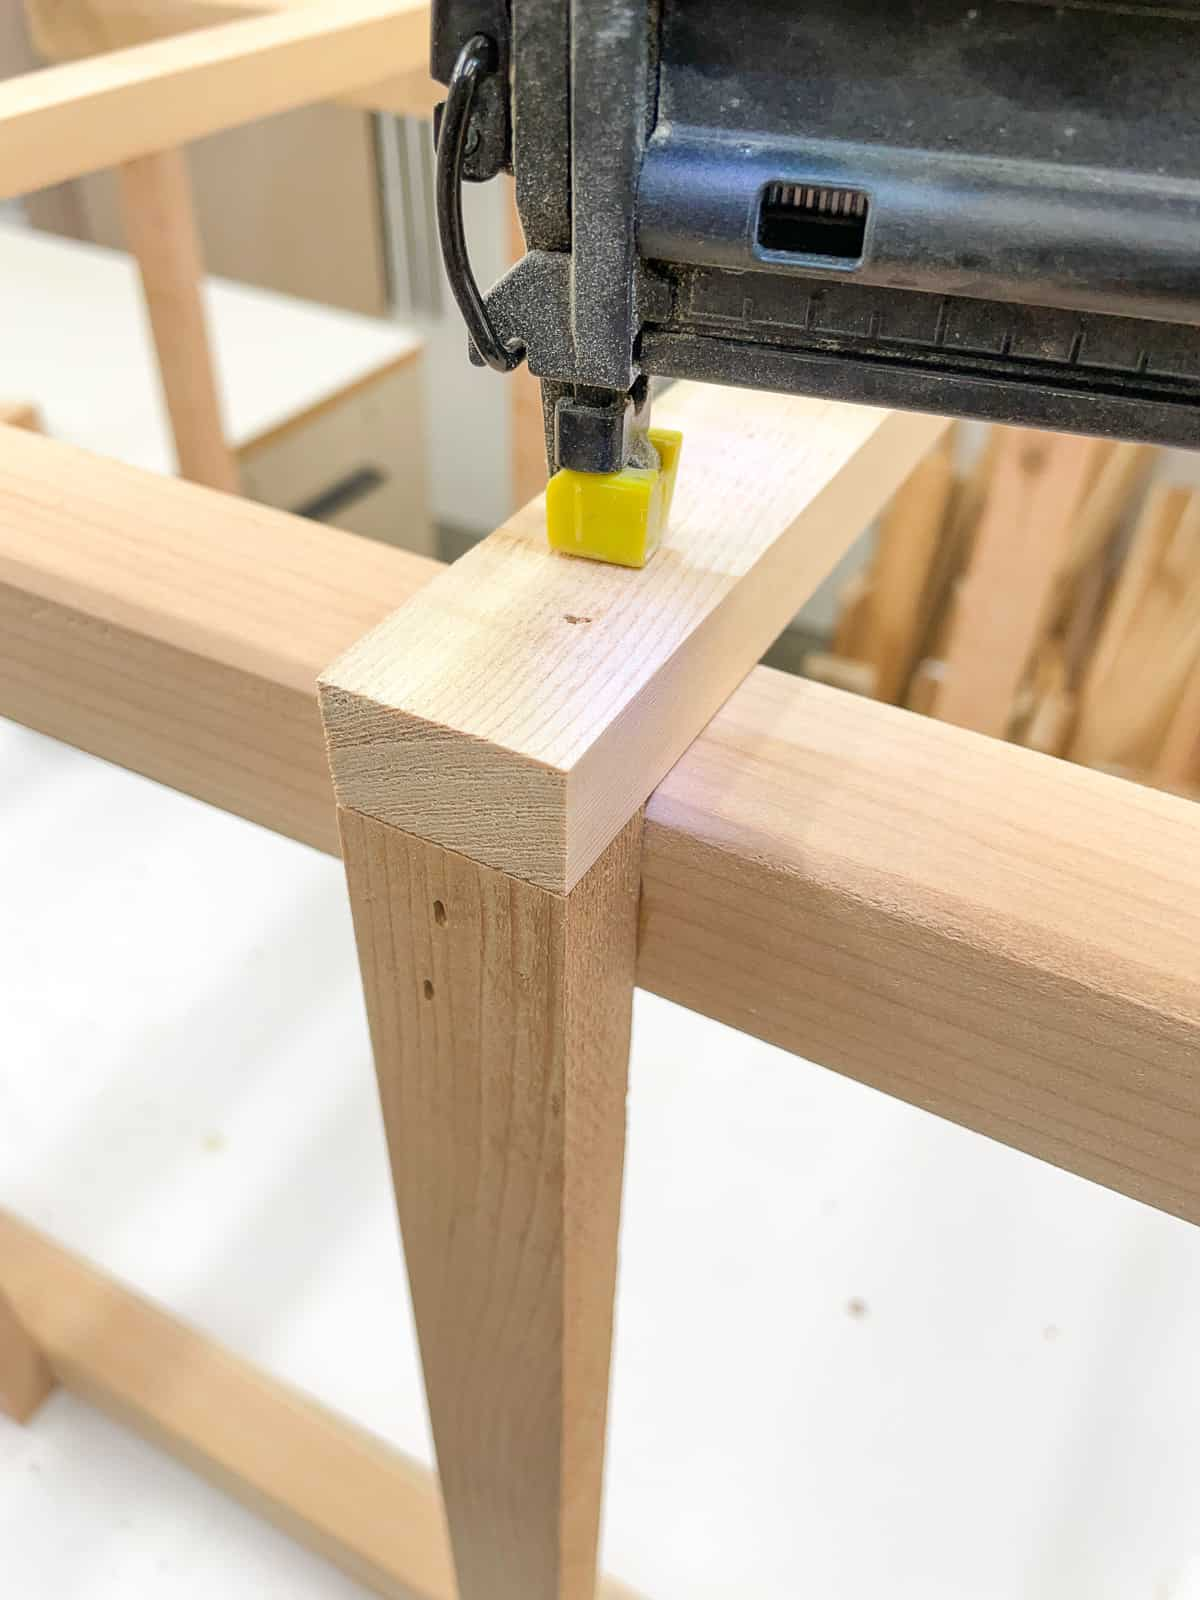 attaching slats to a wooden tomato cage with a brad nailer